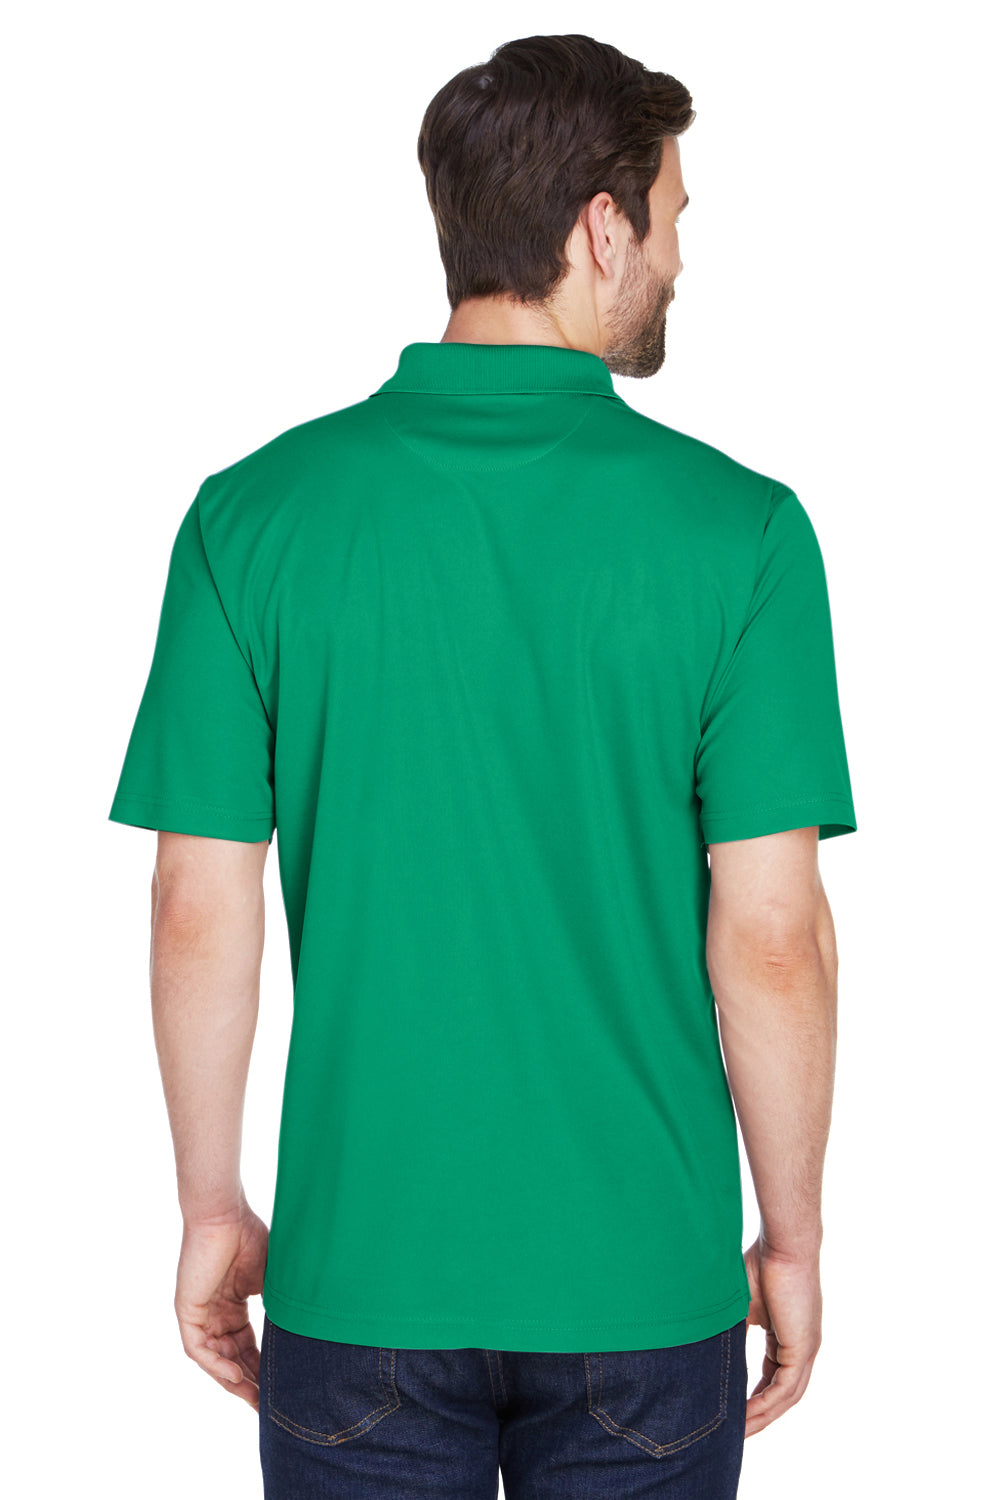 UltraClub 8210 Mens Cool & Dry Moisture Wicking Short Sleeve Polo Shirt Kelly Green Back